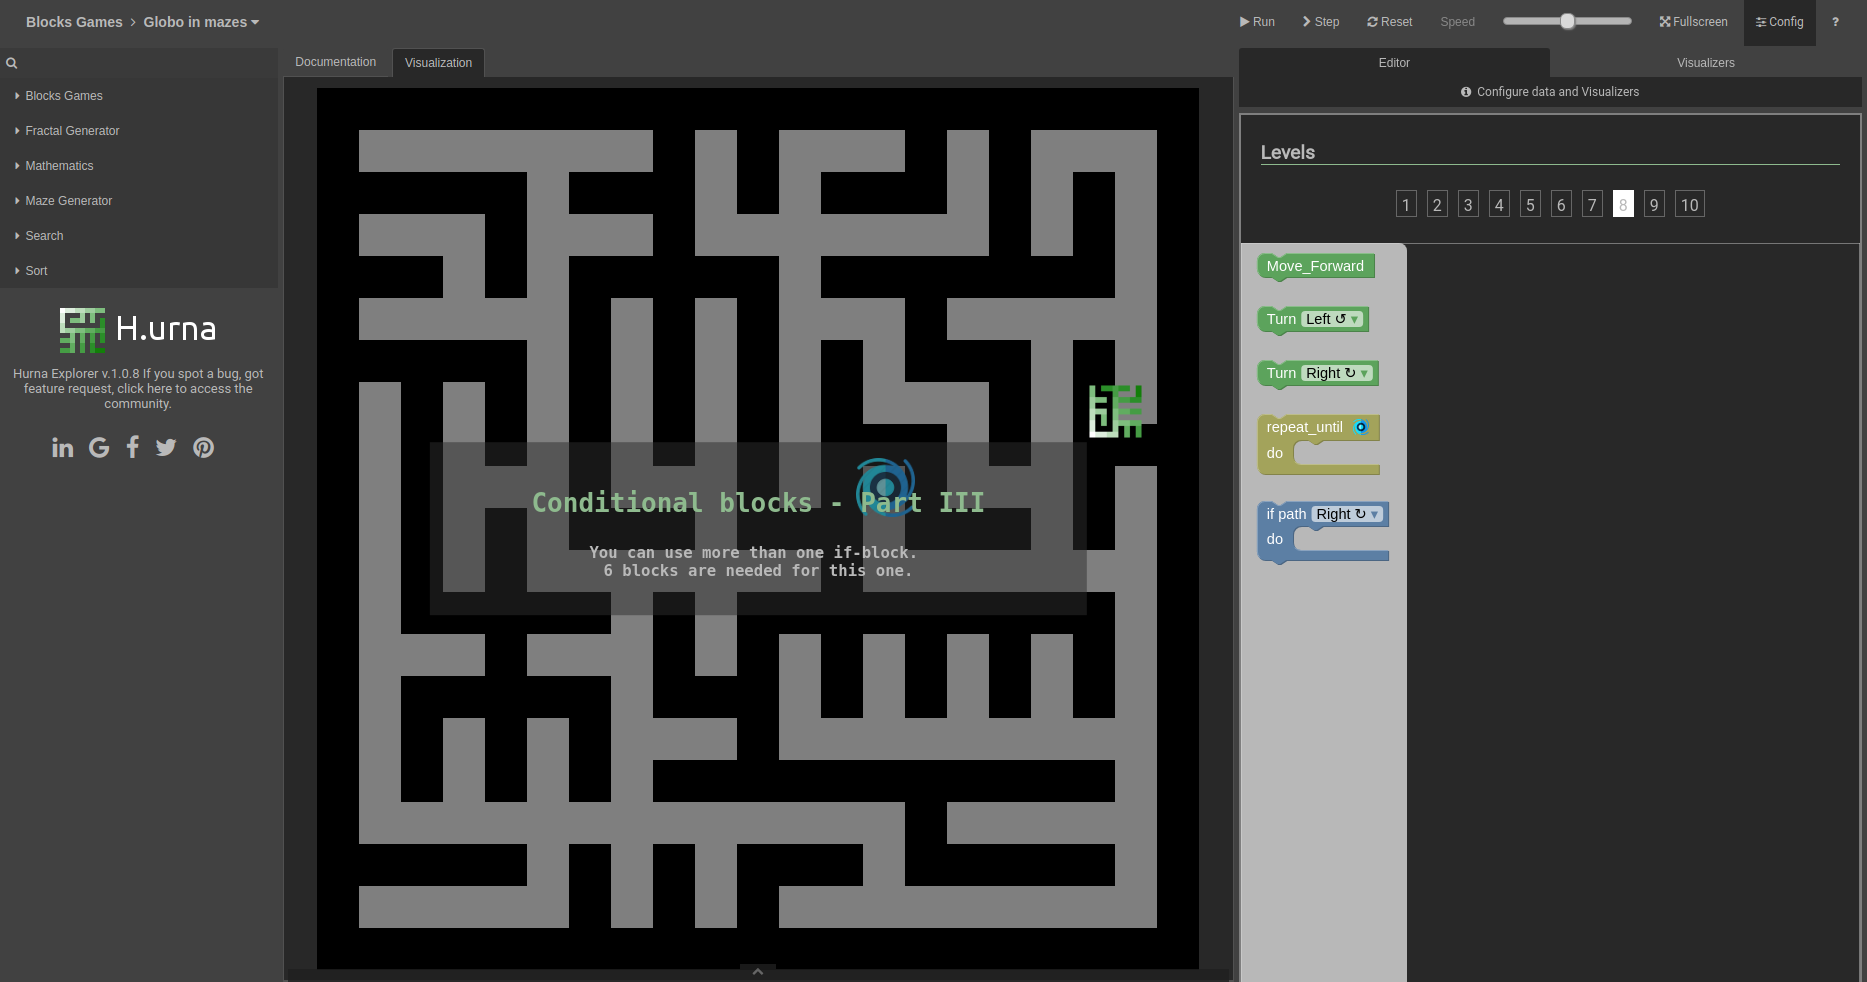 Screenshot Labyrinth - H.urna Blocks - Globo in mazes - Level 08